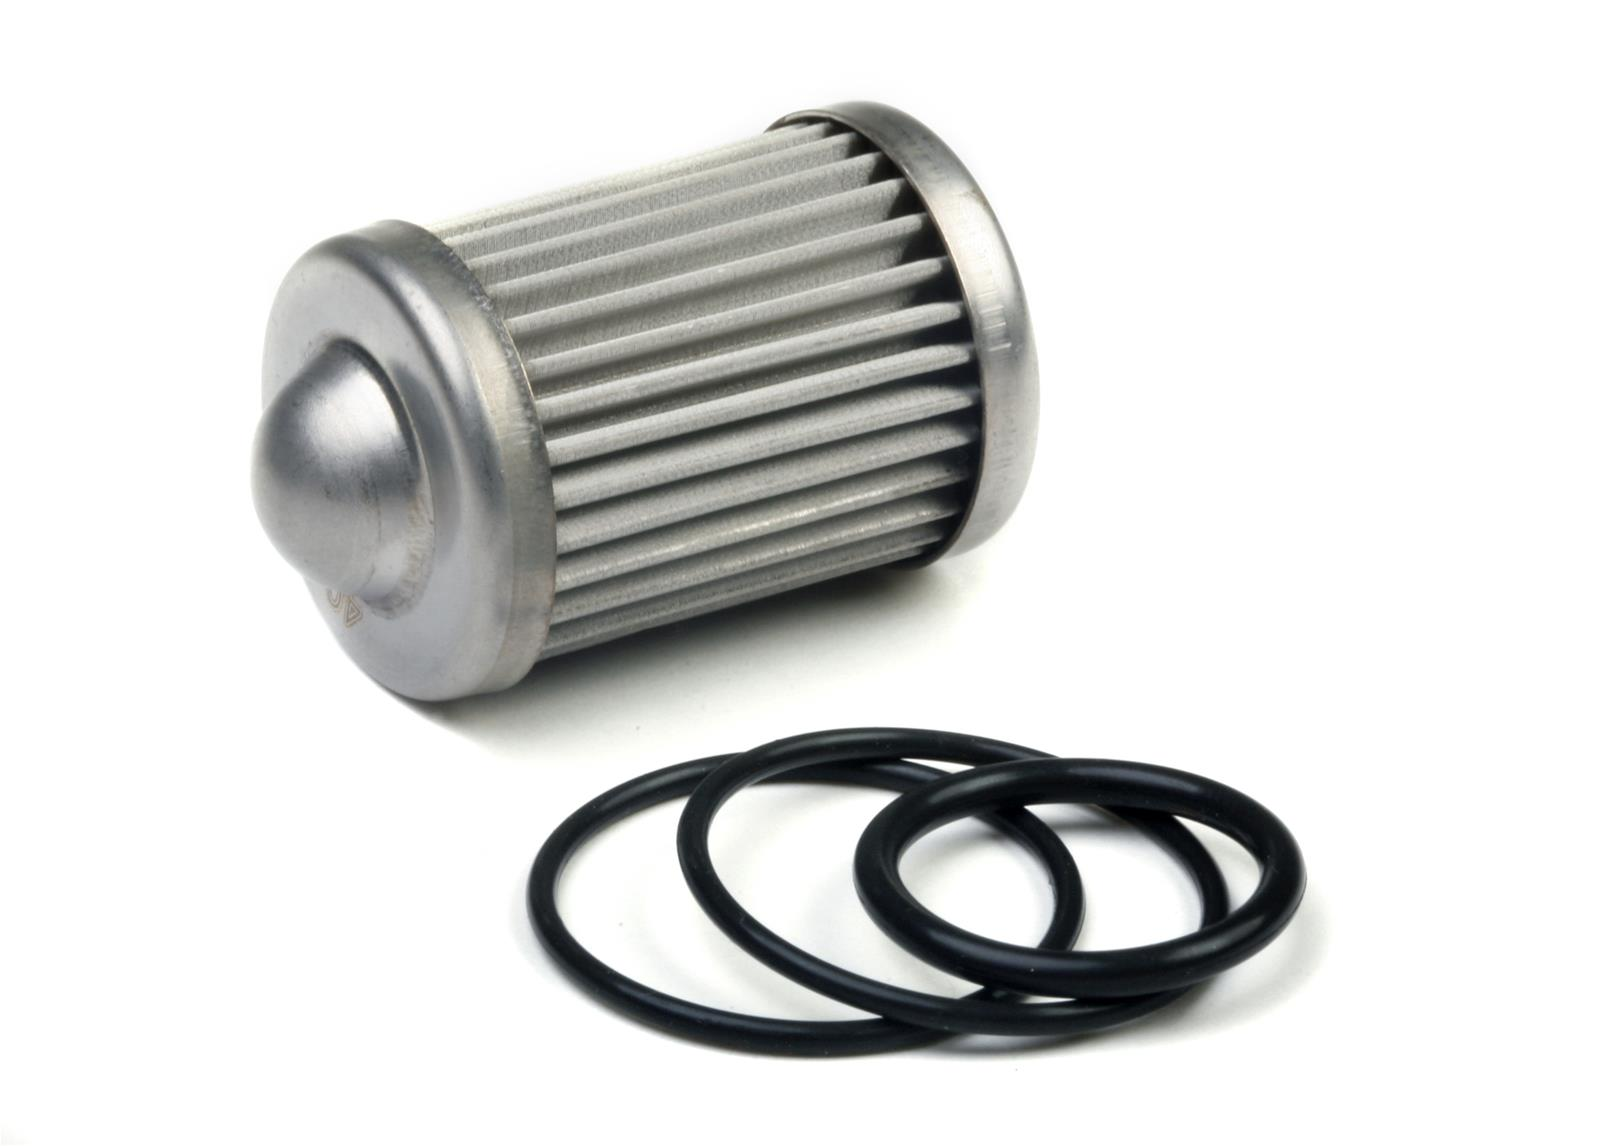 hight resolution of holley hp billet fuel filter replacement elements 162 565 free shipping on orders over 99 at summit racing